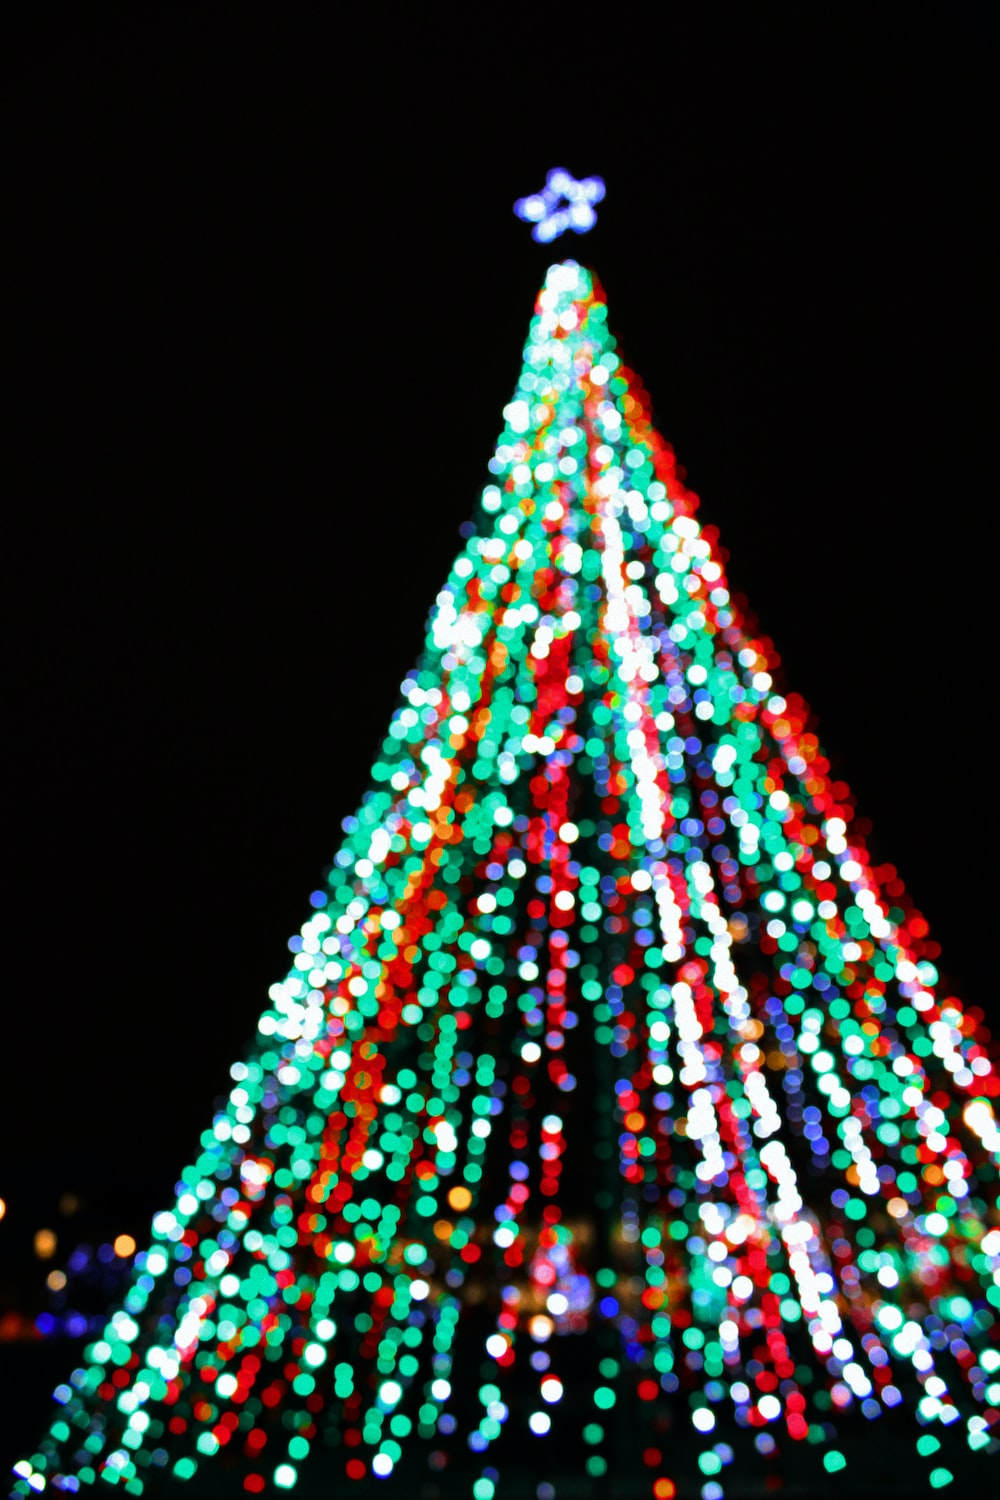 multicolored string light covered tree